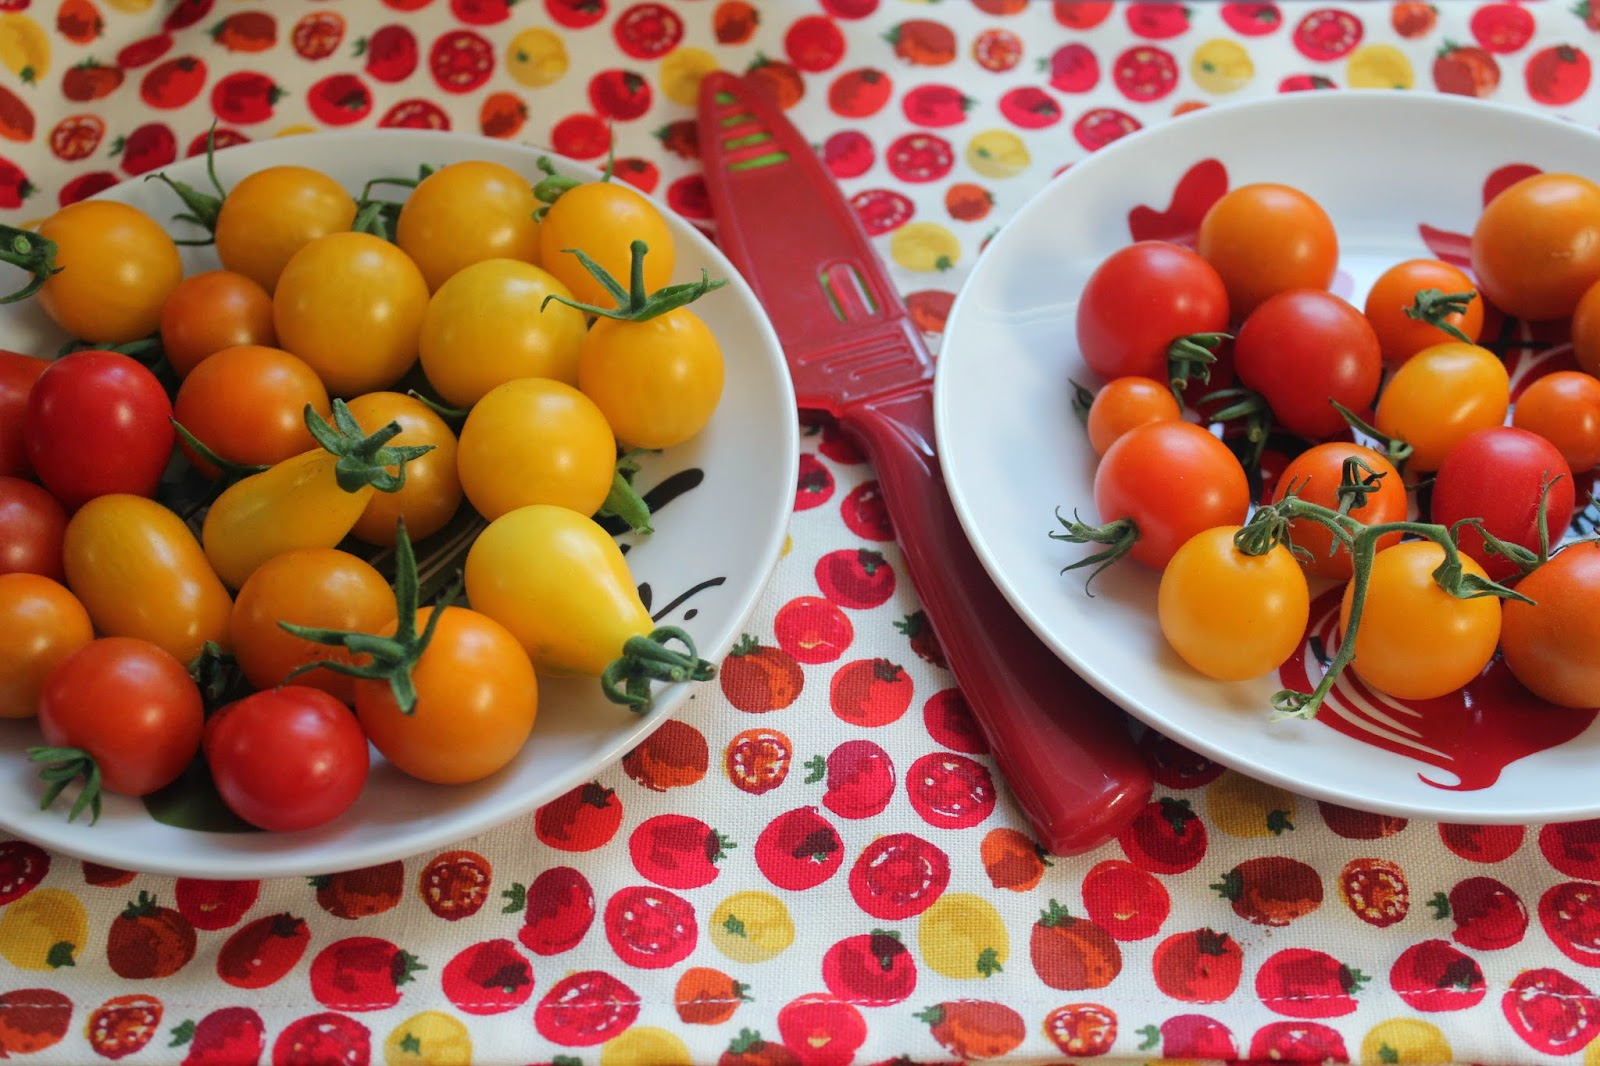 Tomatoes from Megan from Delicious Dishings's garden